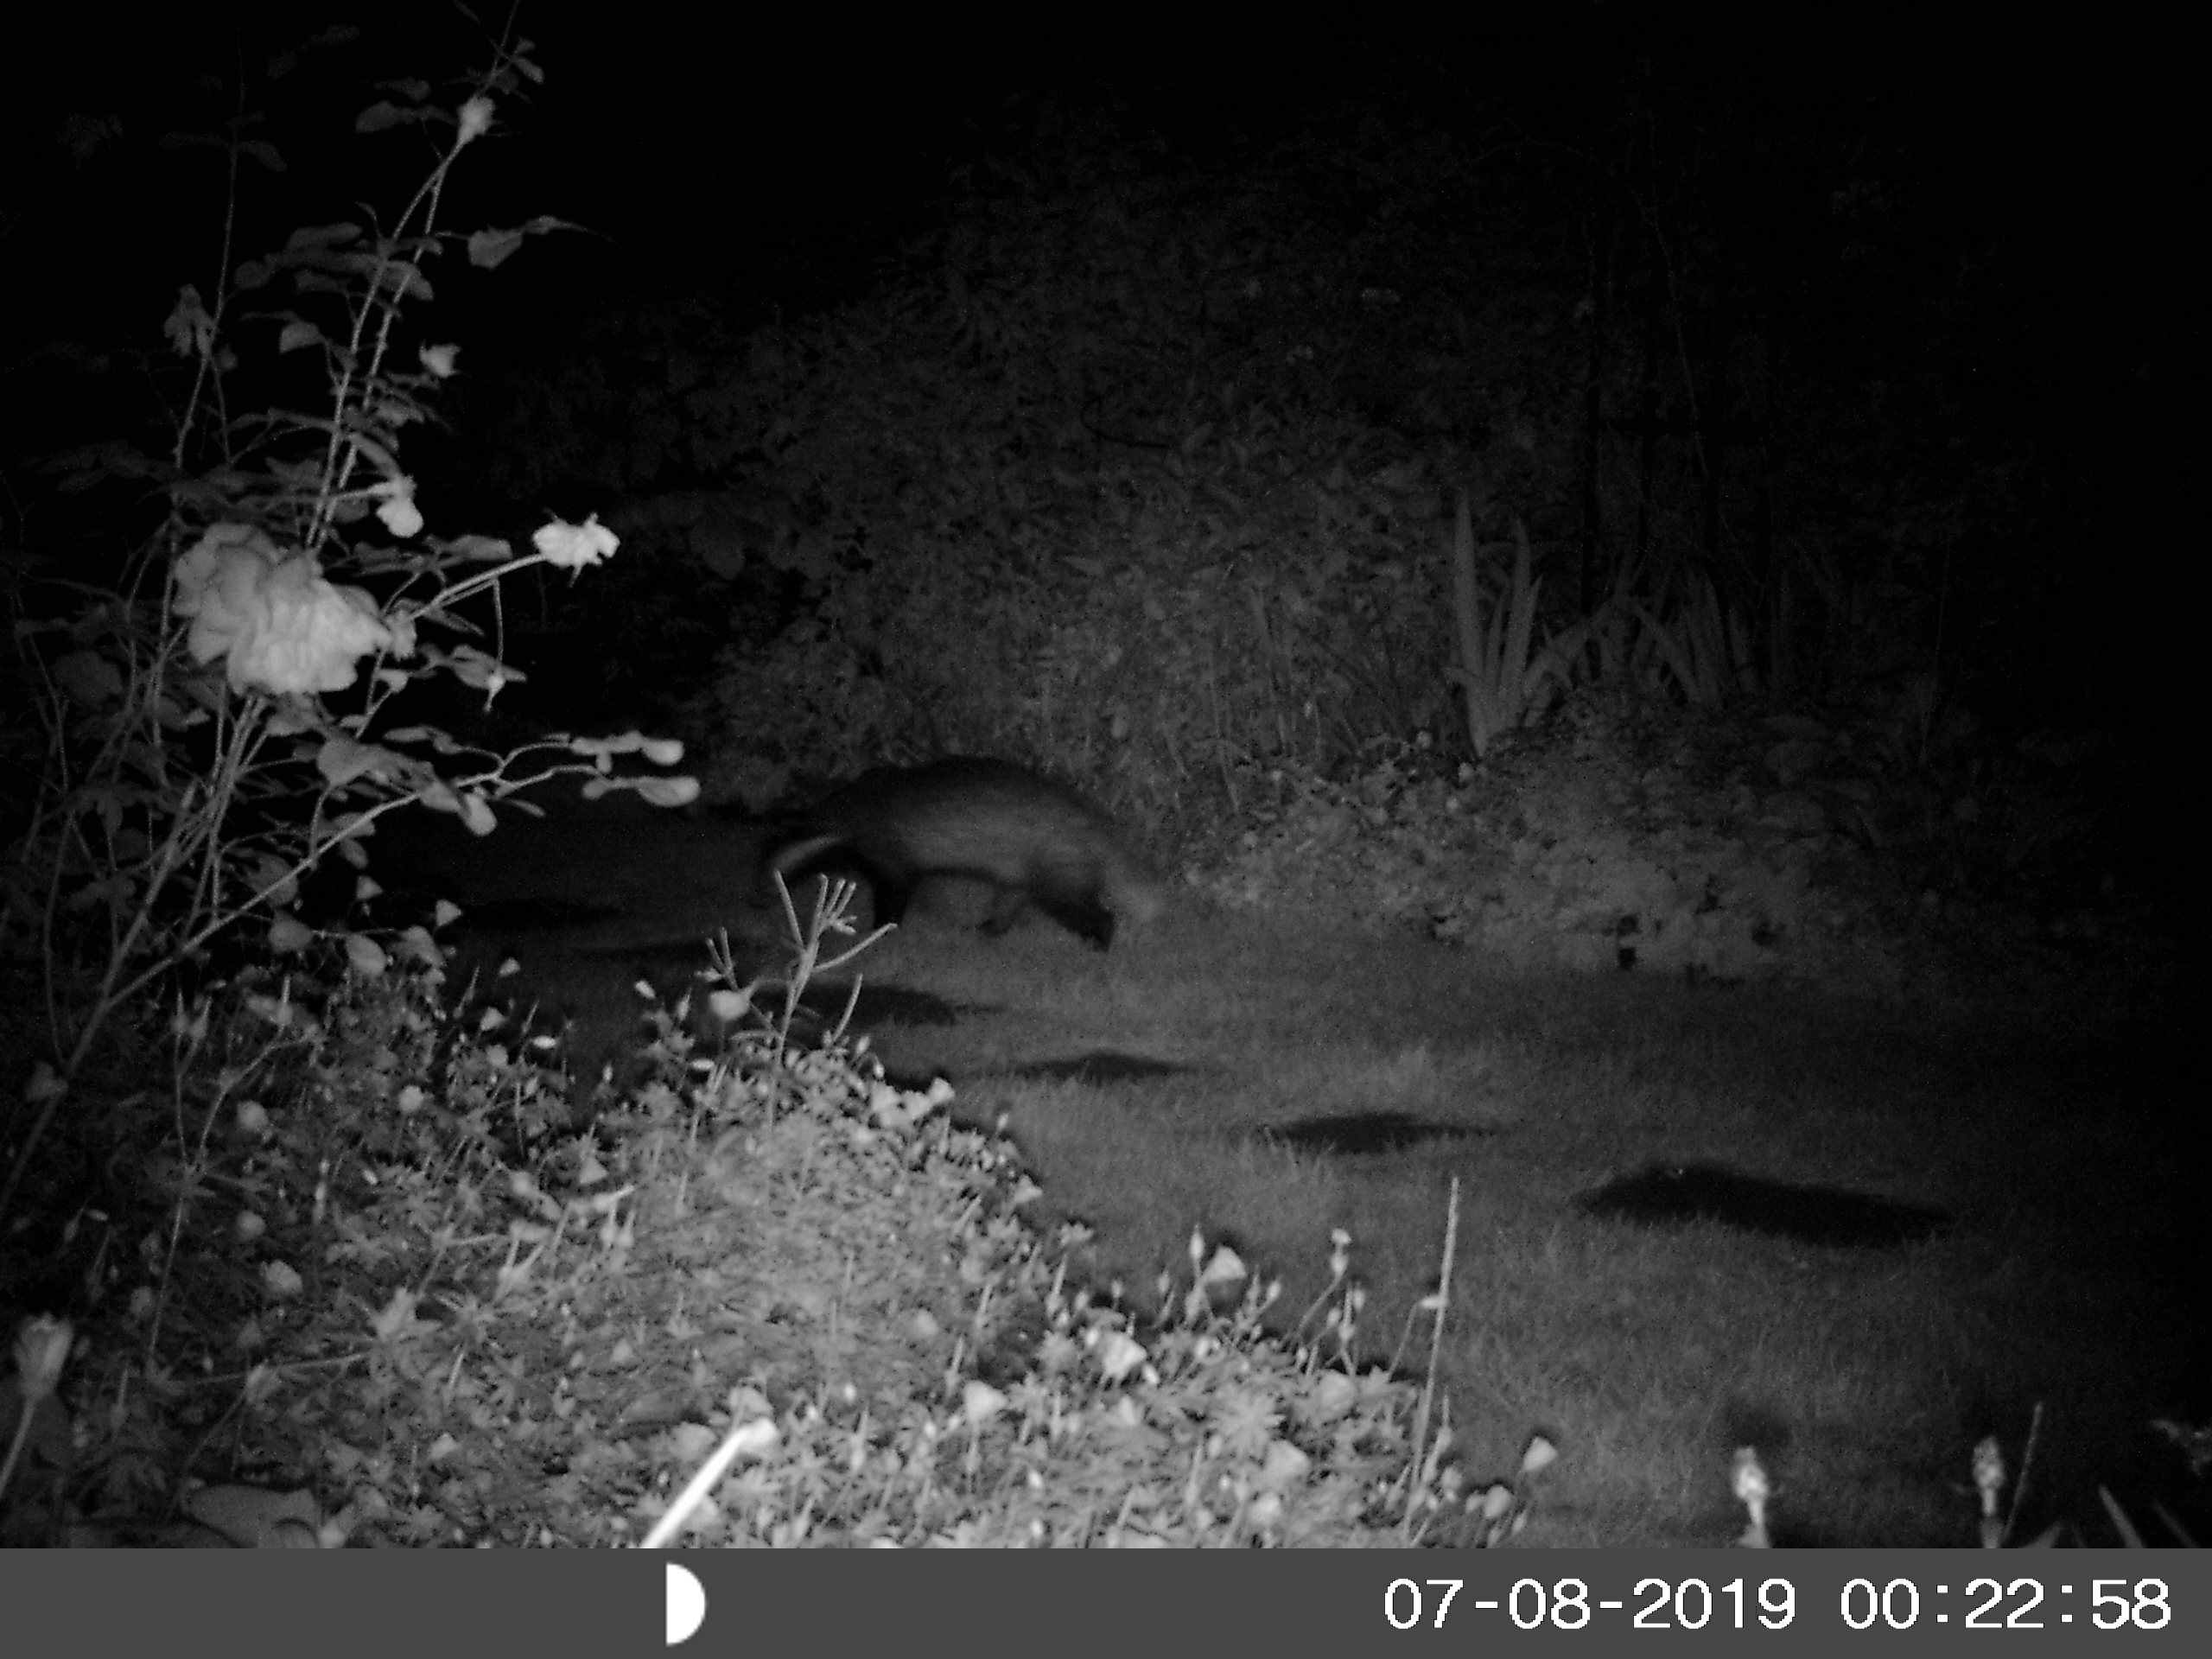 A badger, photographed by IR camera around 20 past midnight